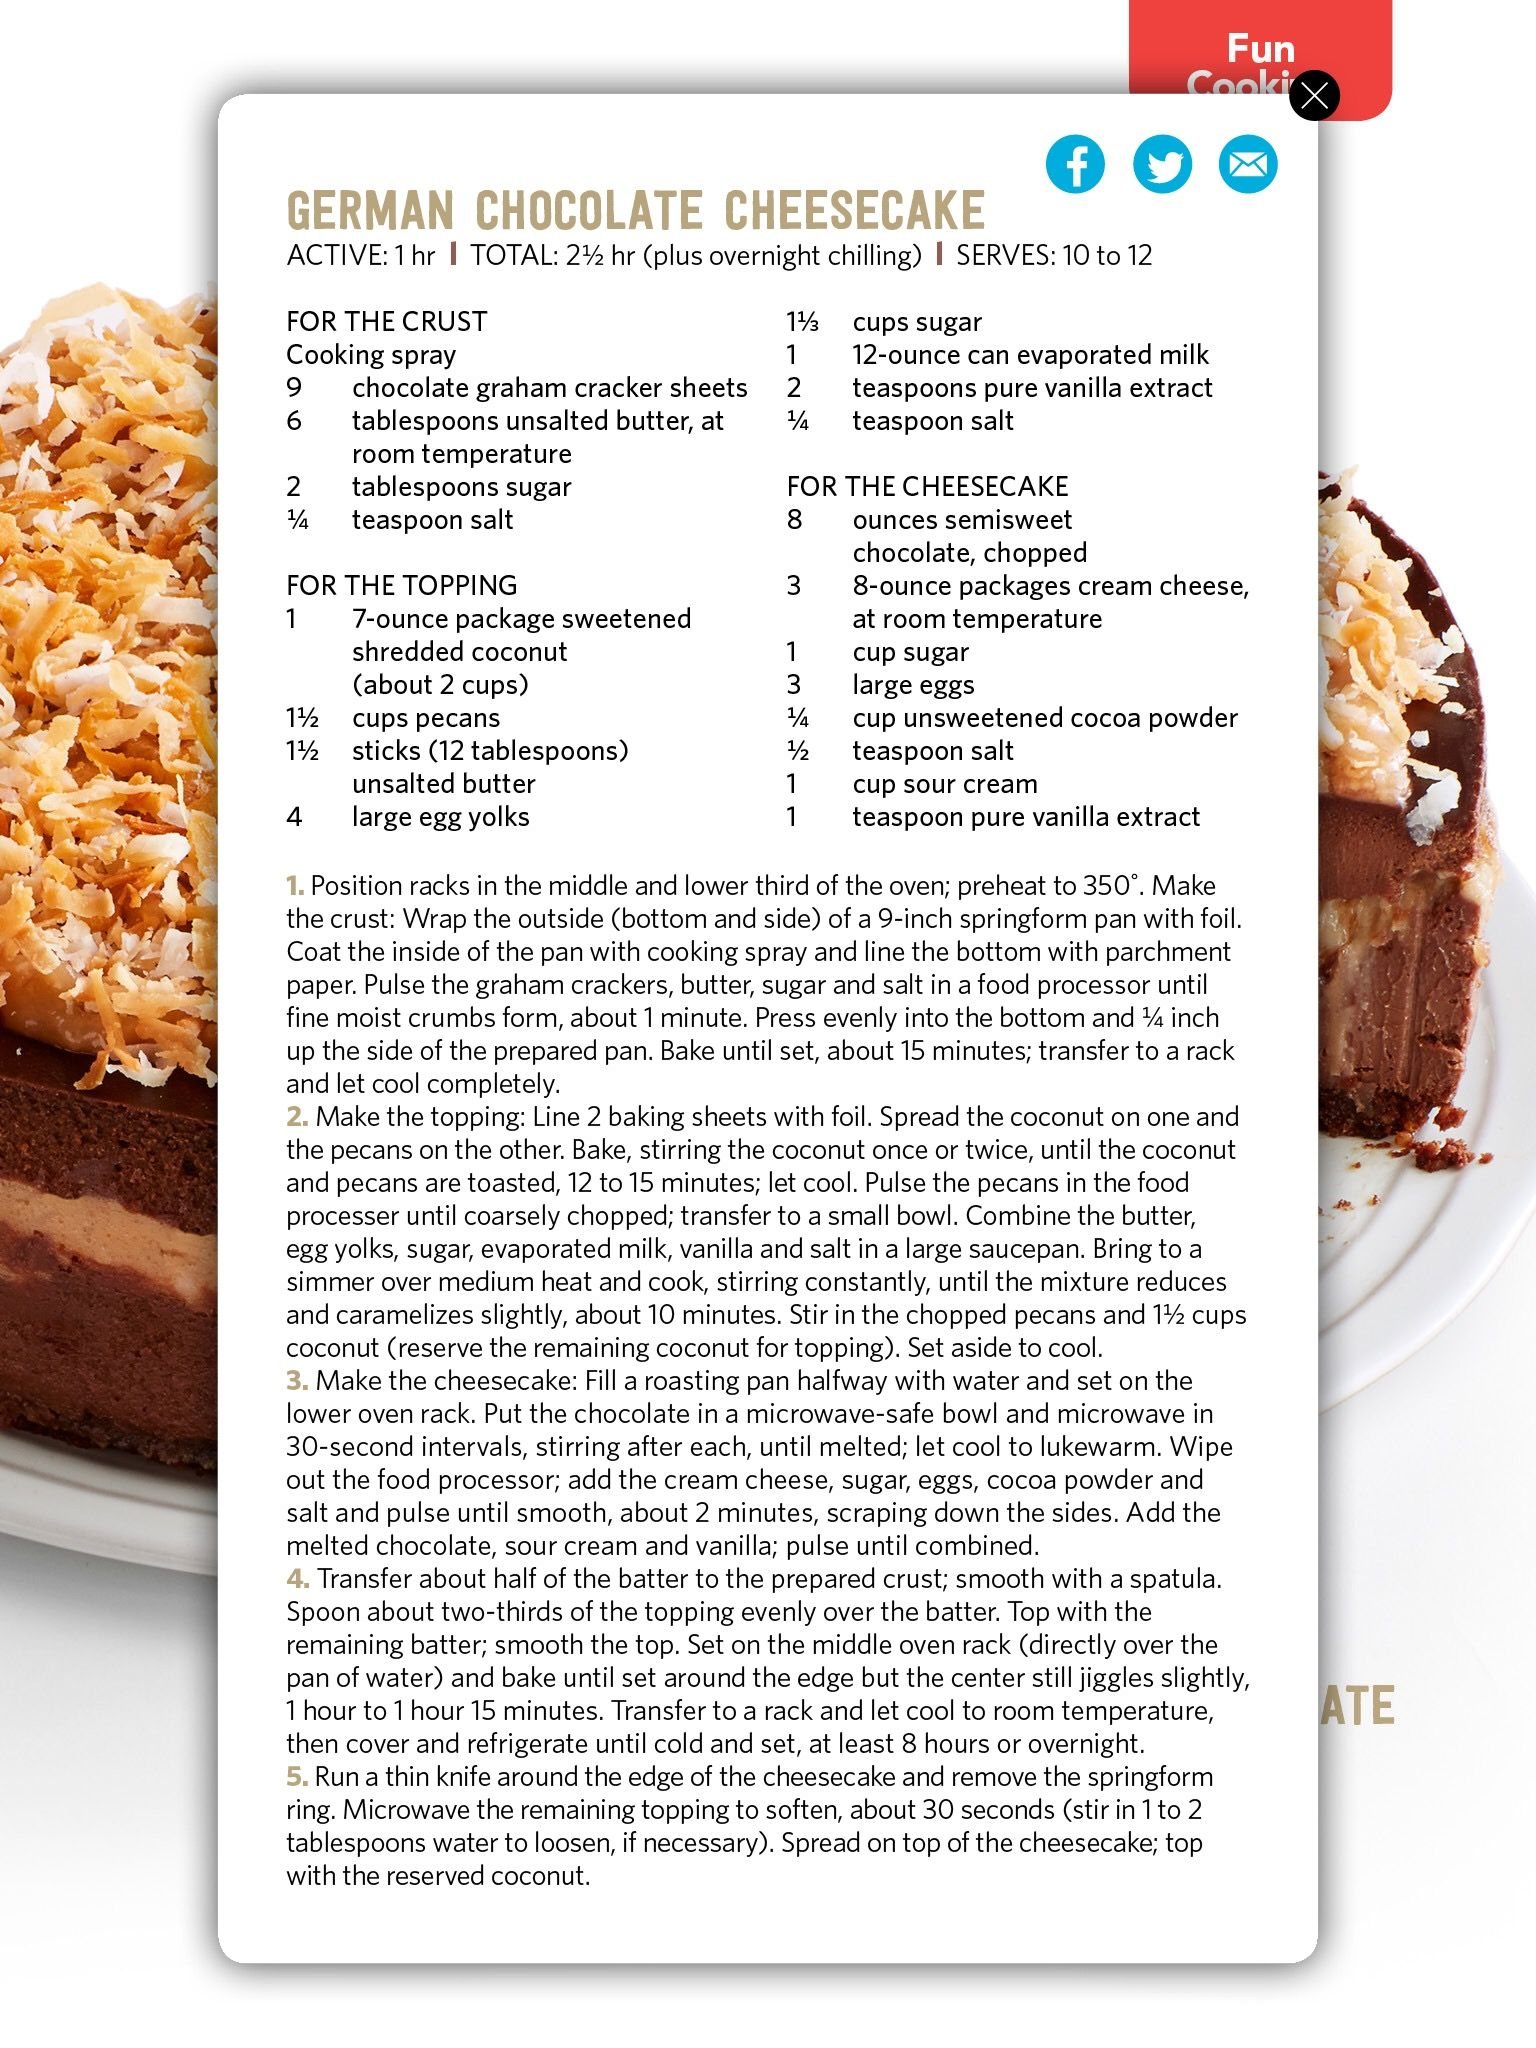 Pin by may albinali on deserts pinterest recipe cards deserts recipe cards german chocolate cheesecake cheesecakes magazine favorite recipes sweet tooth sweet treats chocolates food network forumfinder Choice Image